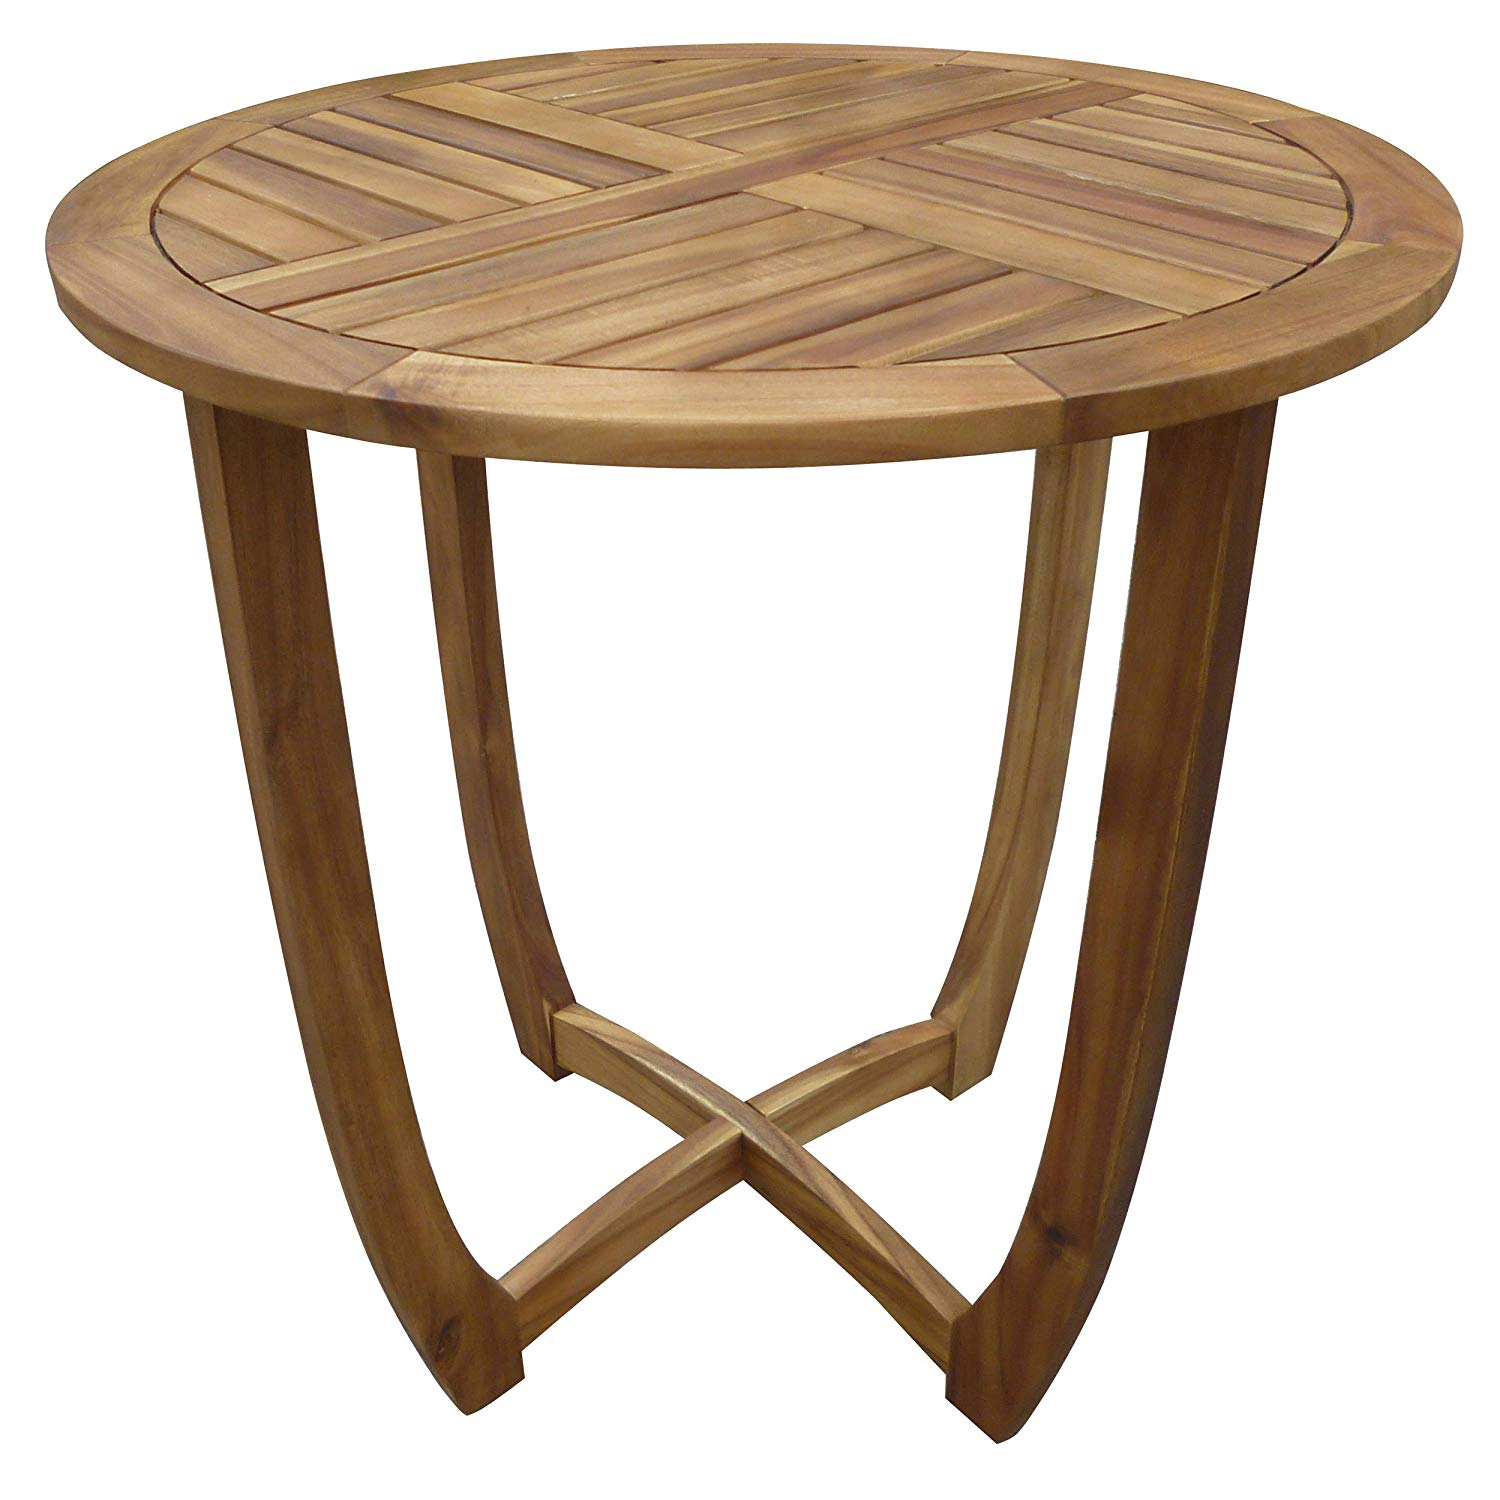 great furniture navarro round wood outdoor unique accent tables table perfect for patio with teak finish garden bedroom packages white and gold entryway bench ikea farm style end